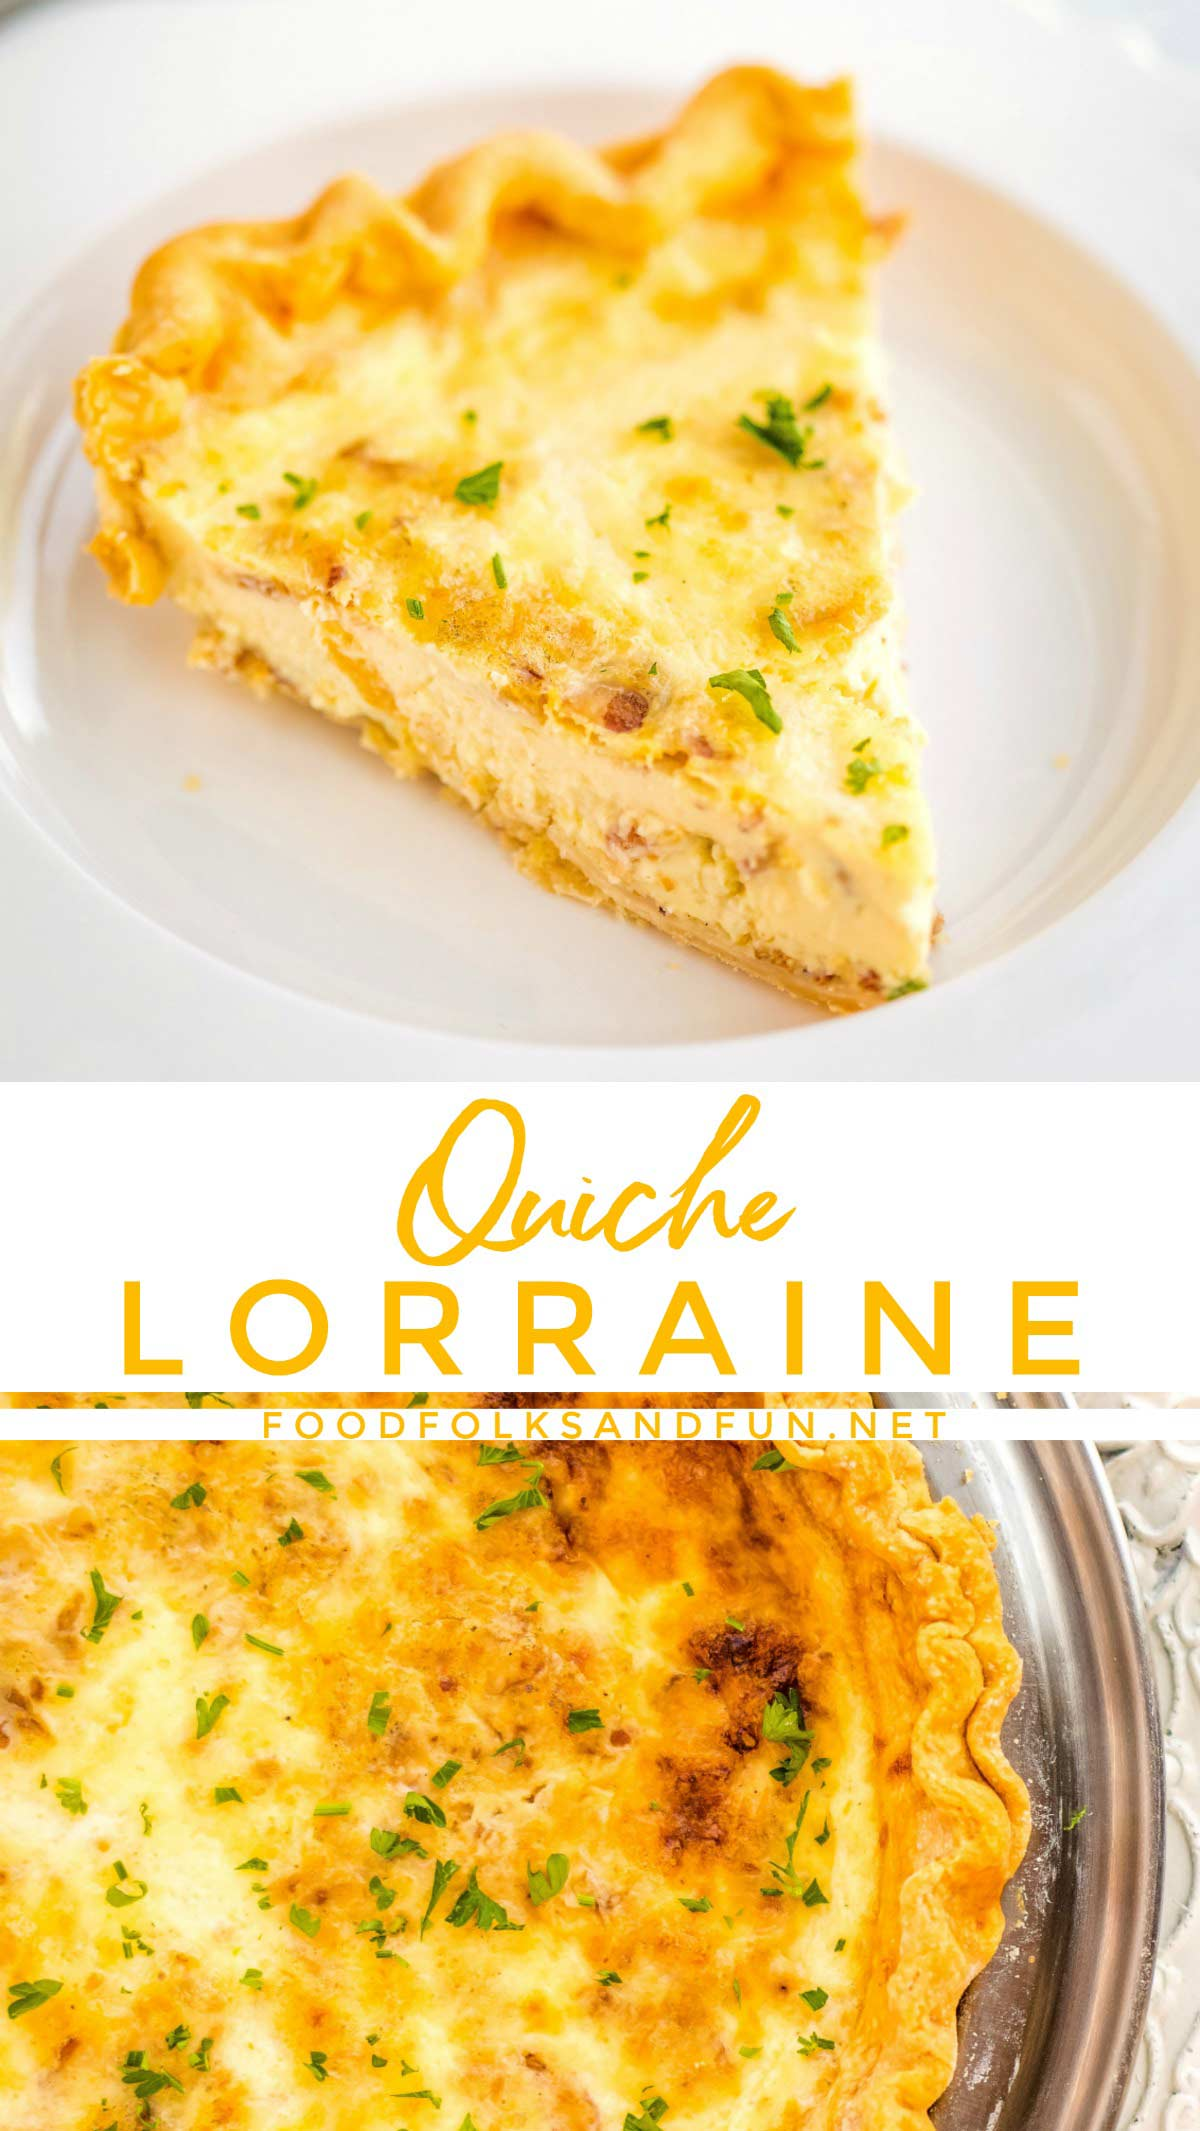 This Quiche Lorraine recipe boasts a crispy, buttery crust and a cheesy, custard-like interior that is full of flavor from the bacon, Gruyère cheese, and nutmeg. via @foodfolksandfun